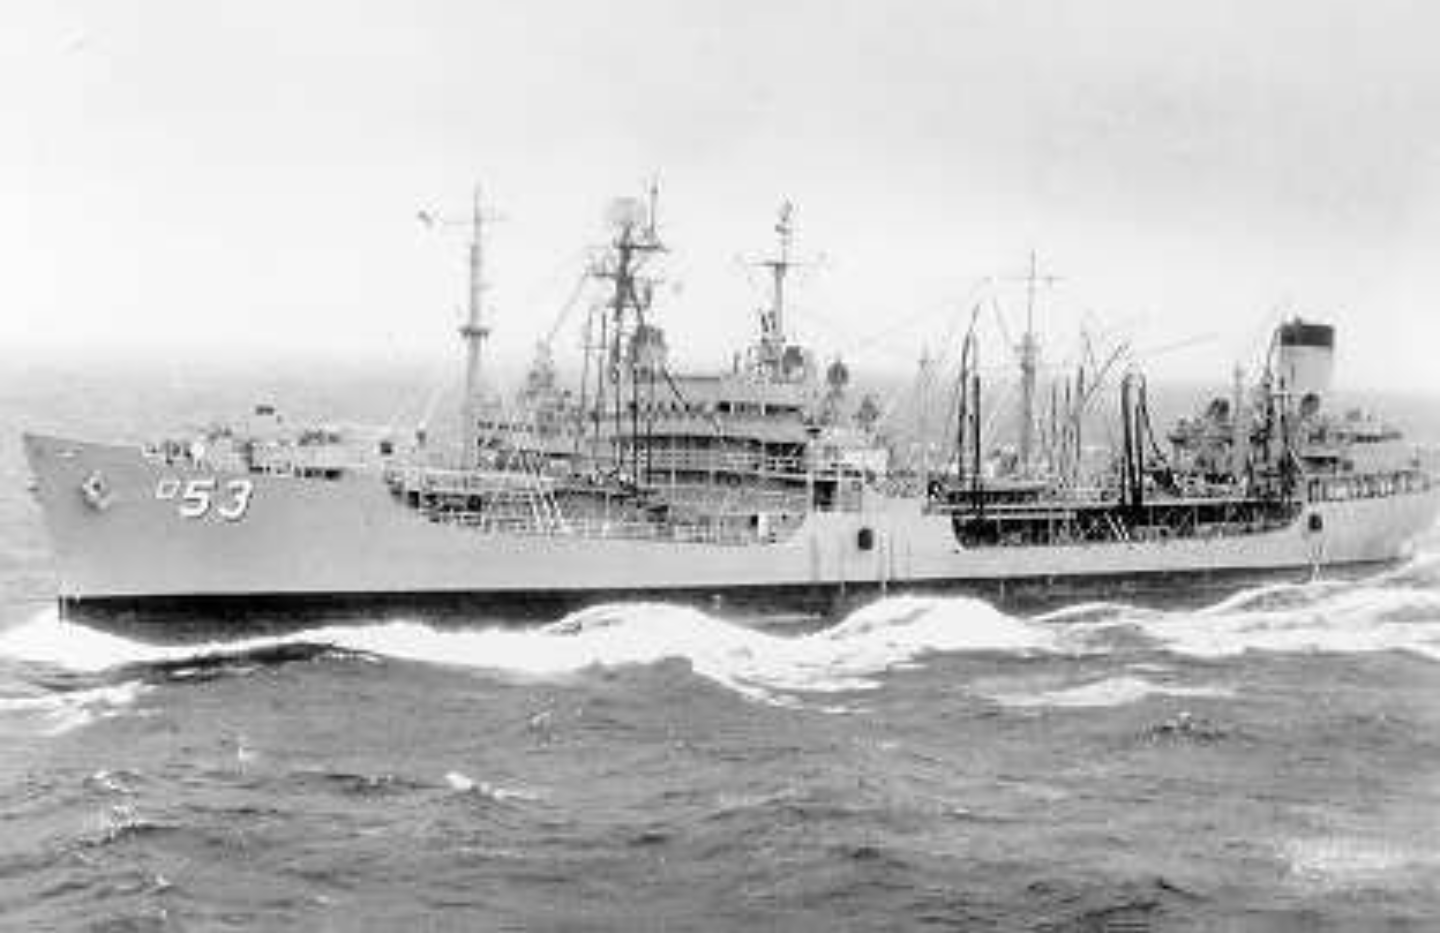 USS CALIENTE WITH OLD RIGGING AND FULL ARMAMENT